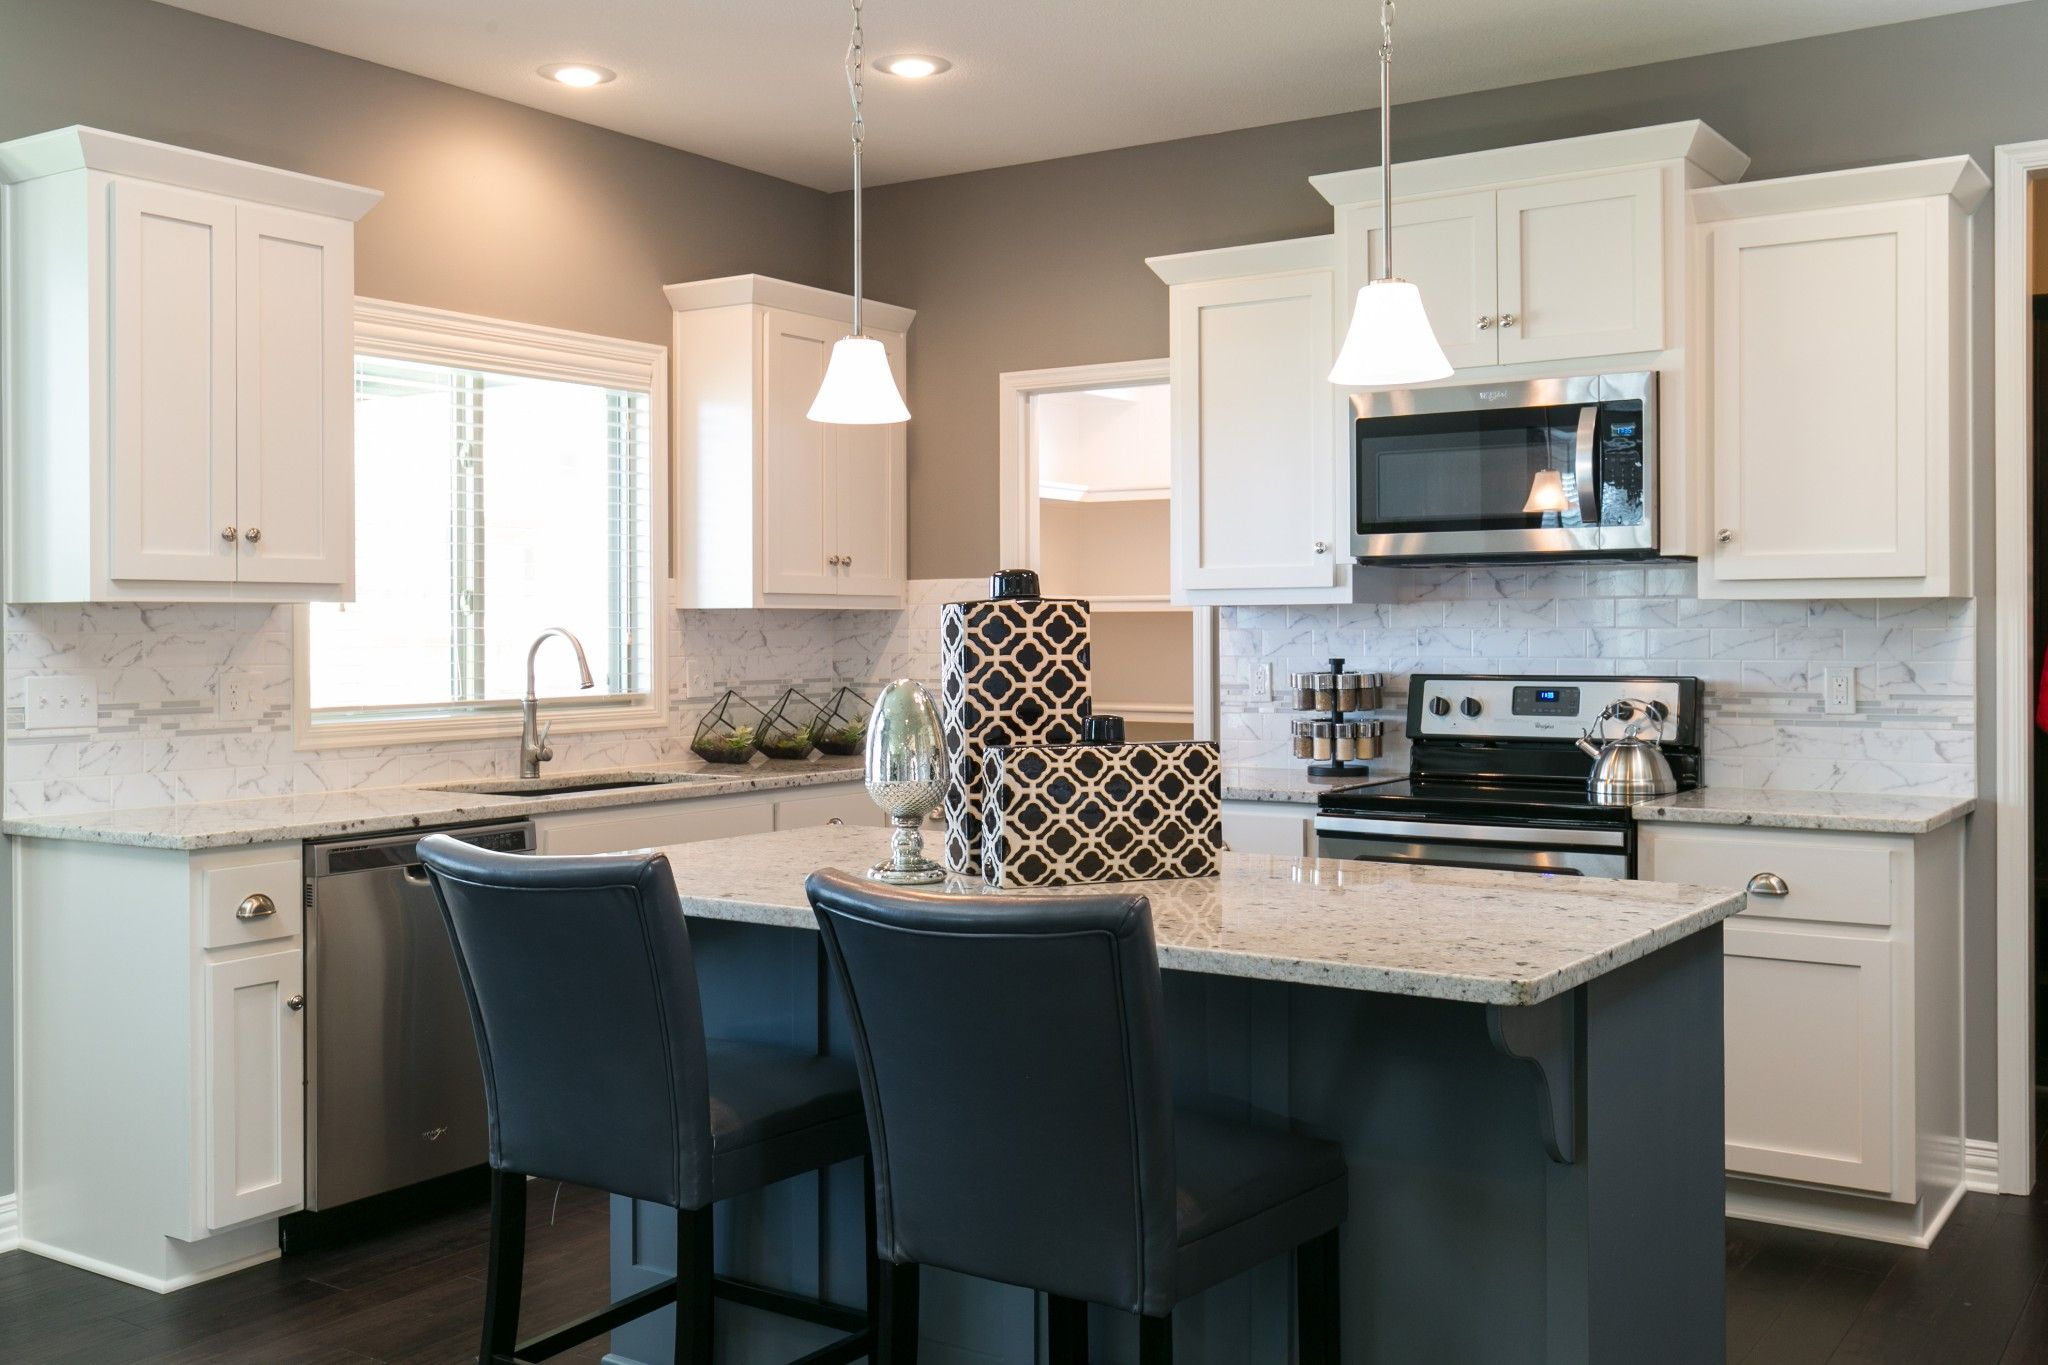 Kitchen featured in the Preston Ridge - IA By Summit Homes in Des Moines, IA